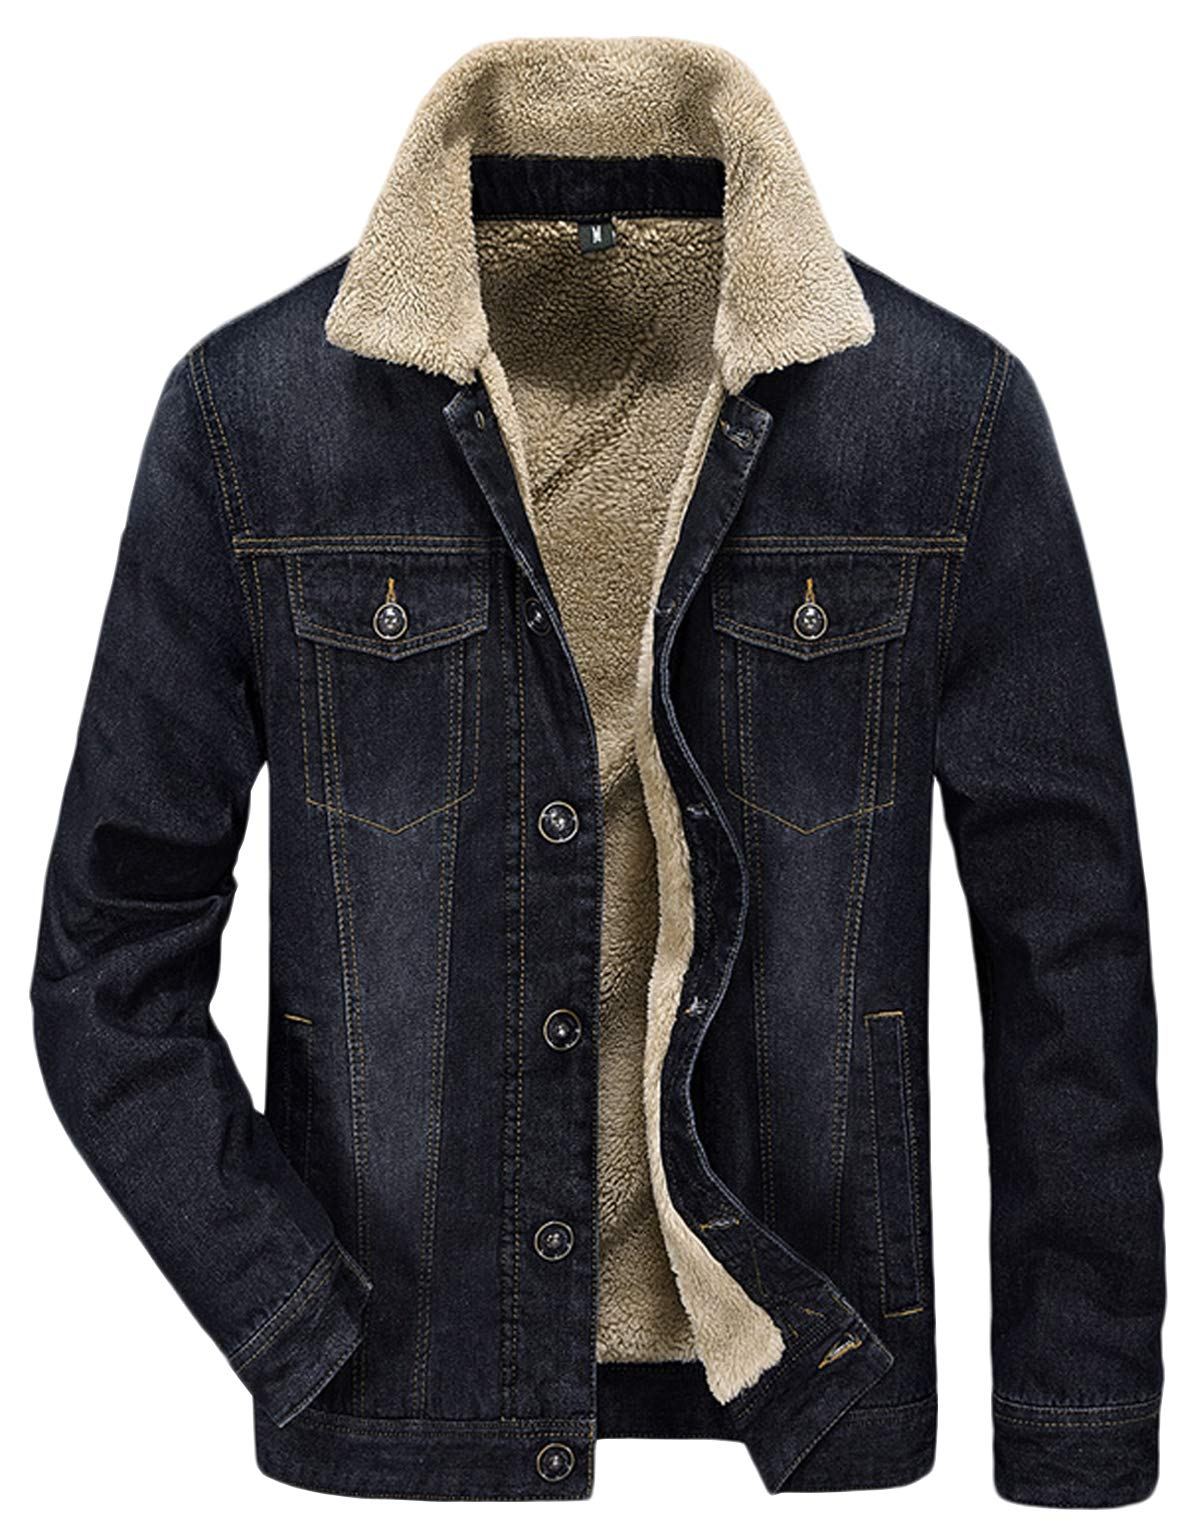 HOW'ON Men's Plus Cotton Warm Fur Collar Sherpa Lined Denim Jacket Button Down Classy Casual Quilted Jeans Coats Outwear Black L by HOW'ON